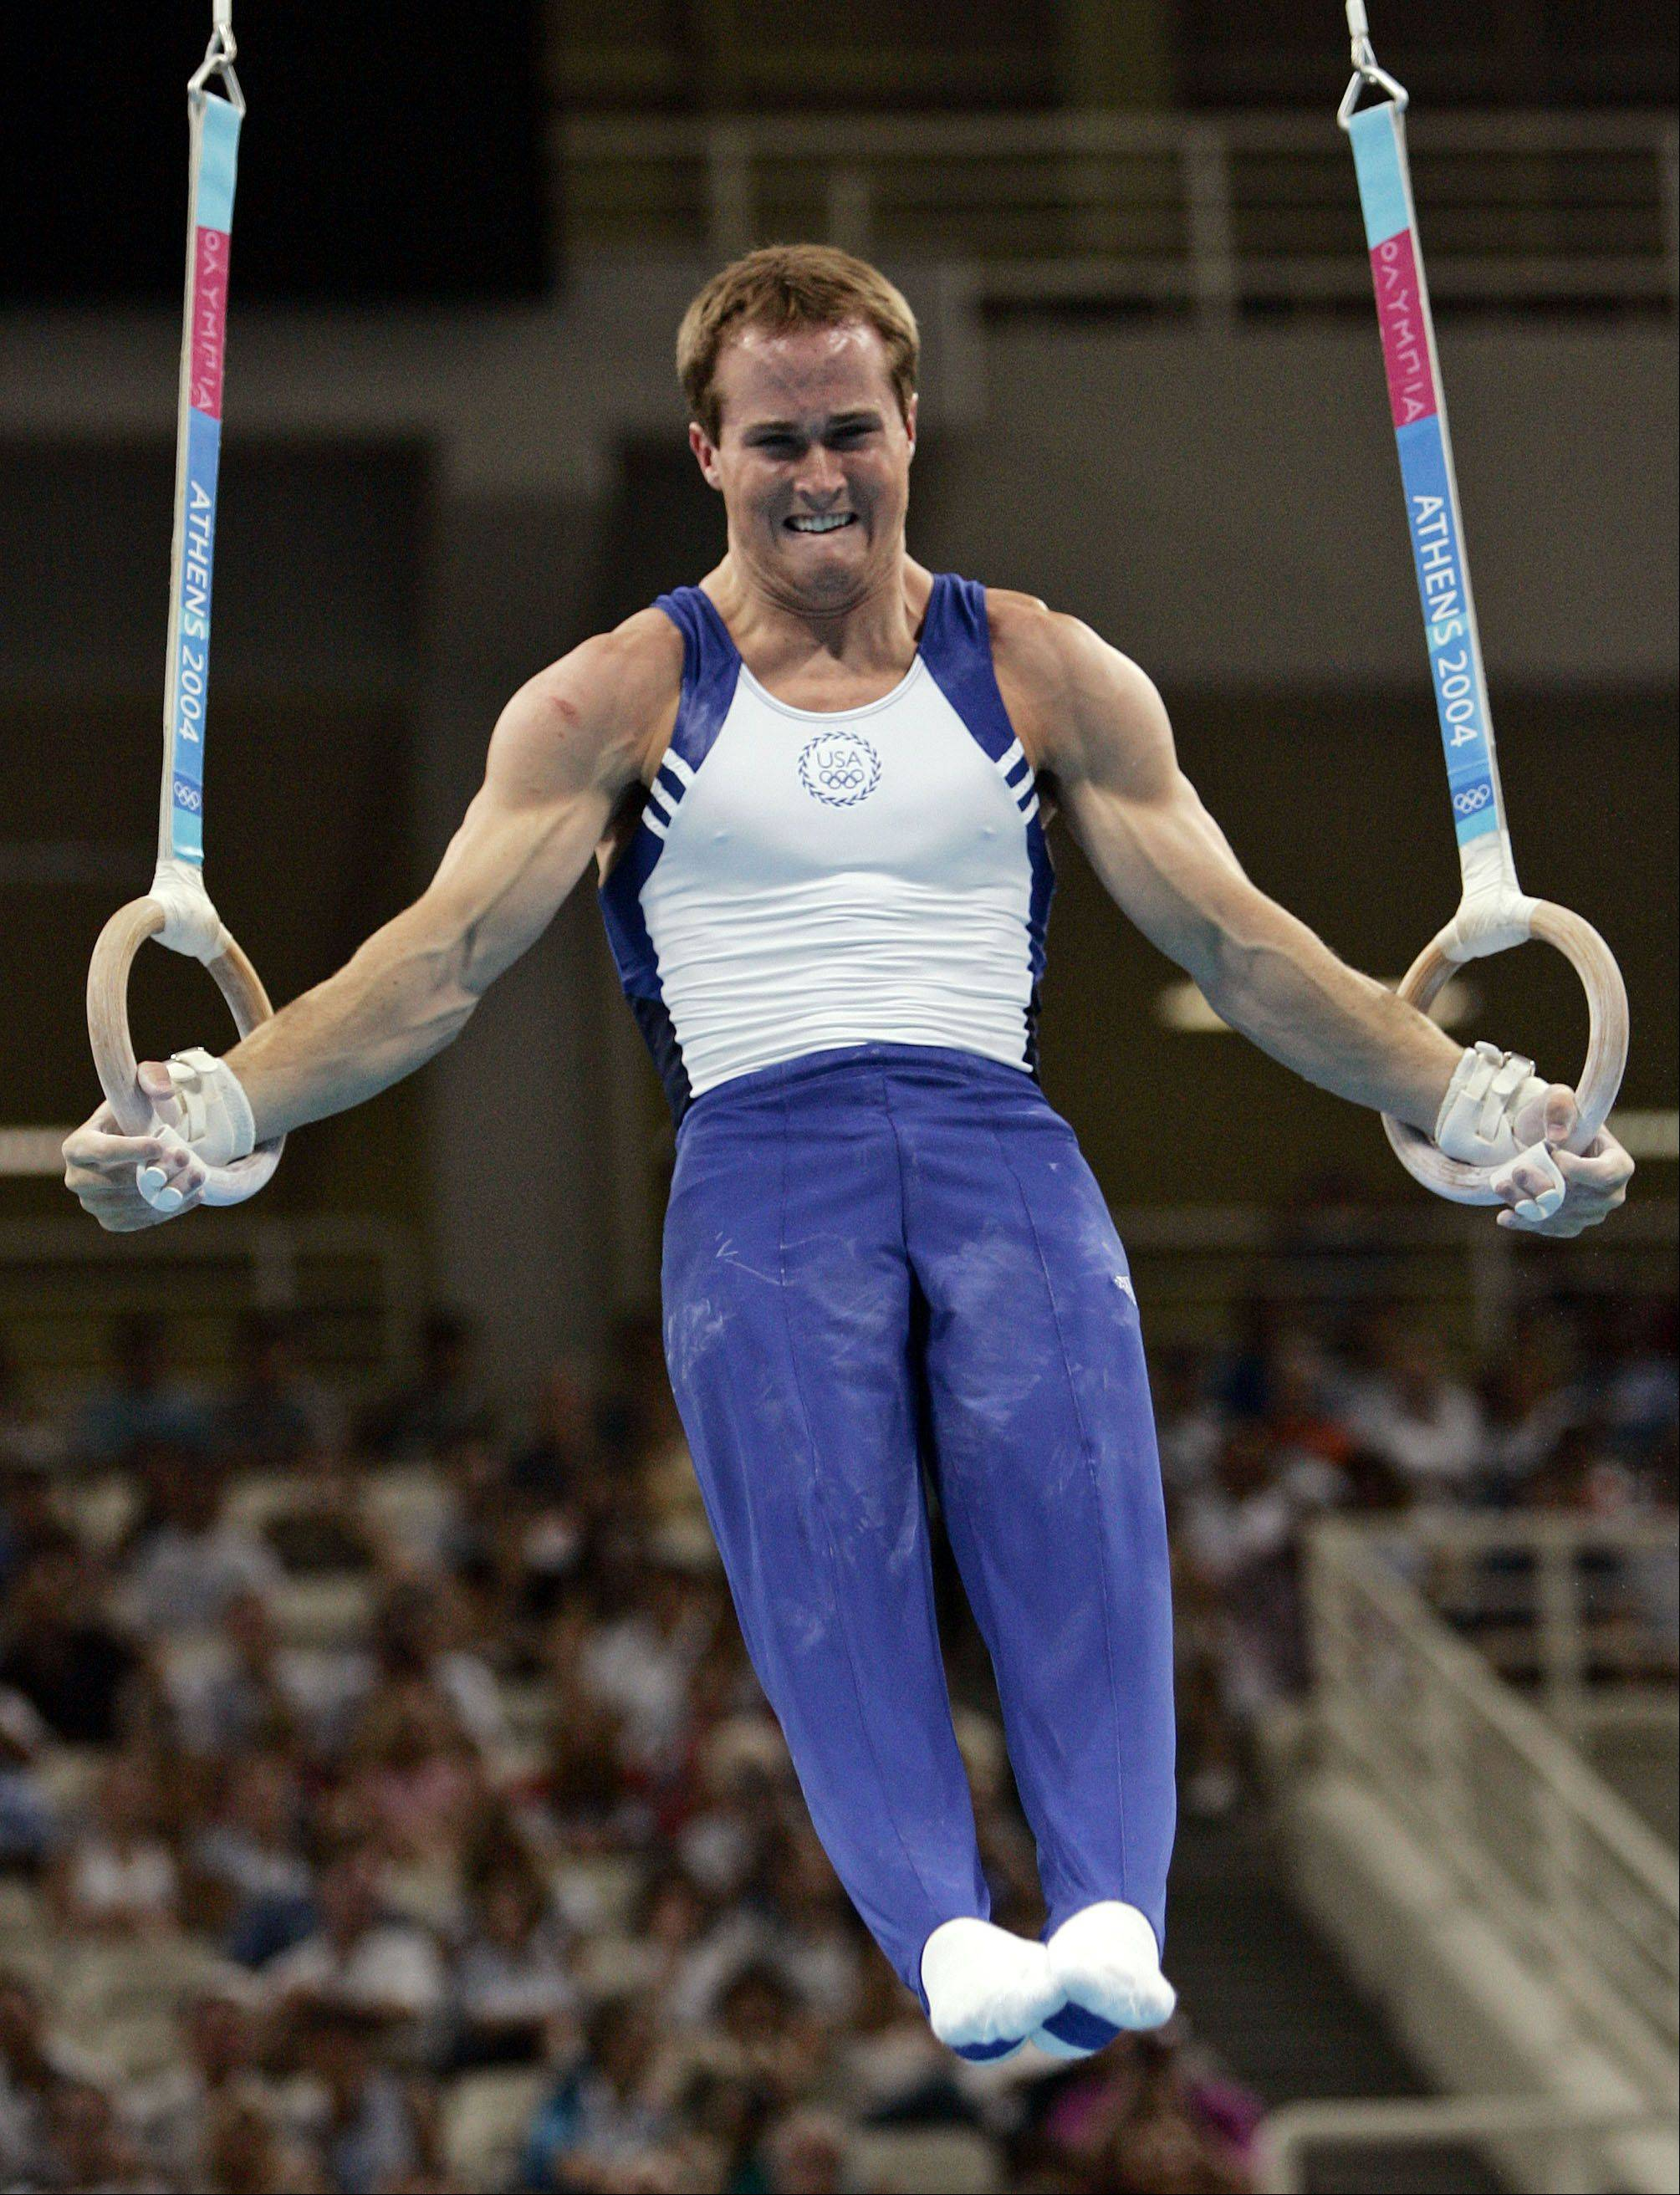 Paul Hamm, of the United States, competes on the rings during the men's gymnastics individual all-around final at the 2004 Olympic Games in Athens in 2004.